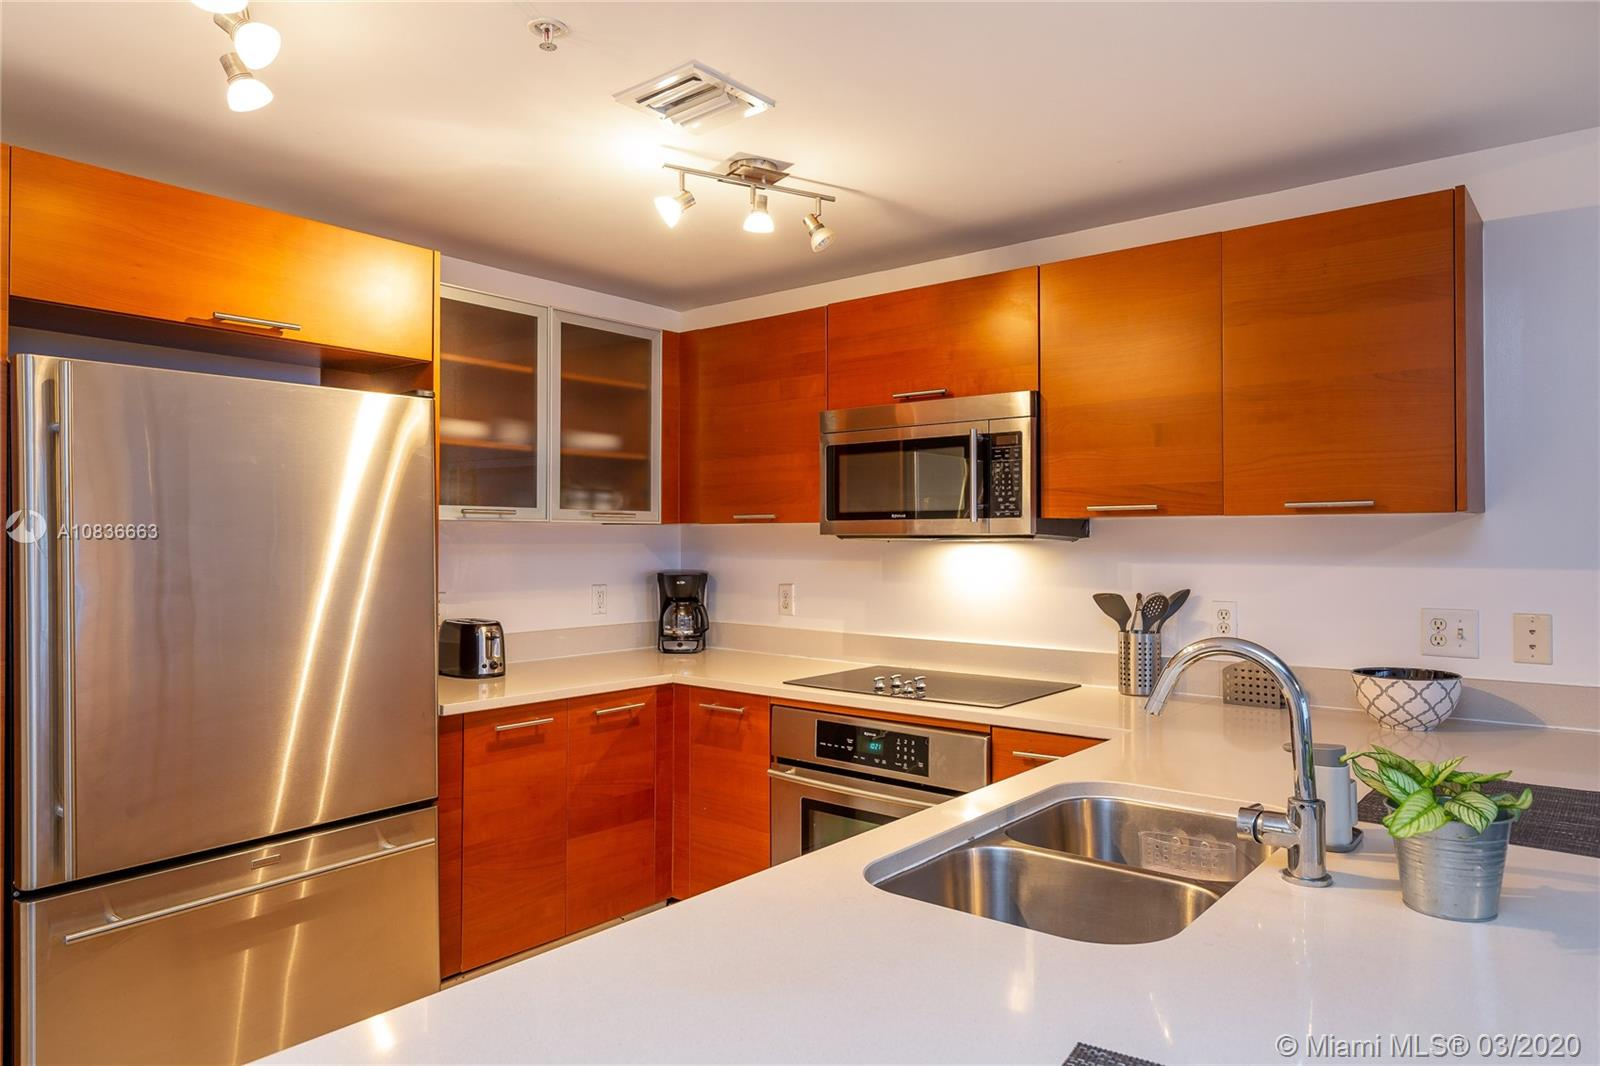 3250 NE 1st Ave #607 For Sale A10836663, FL